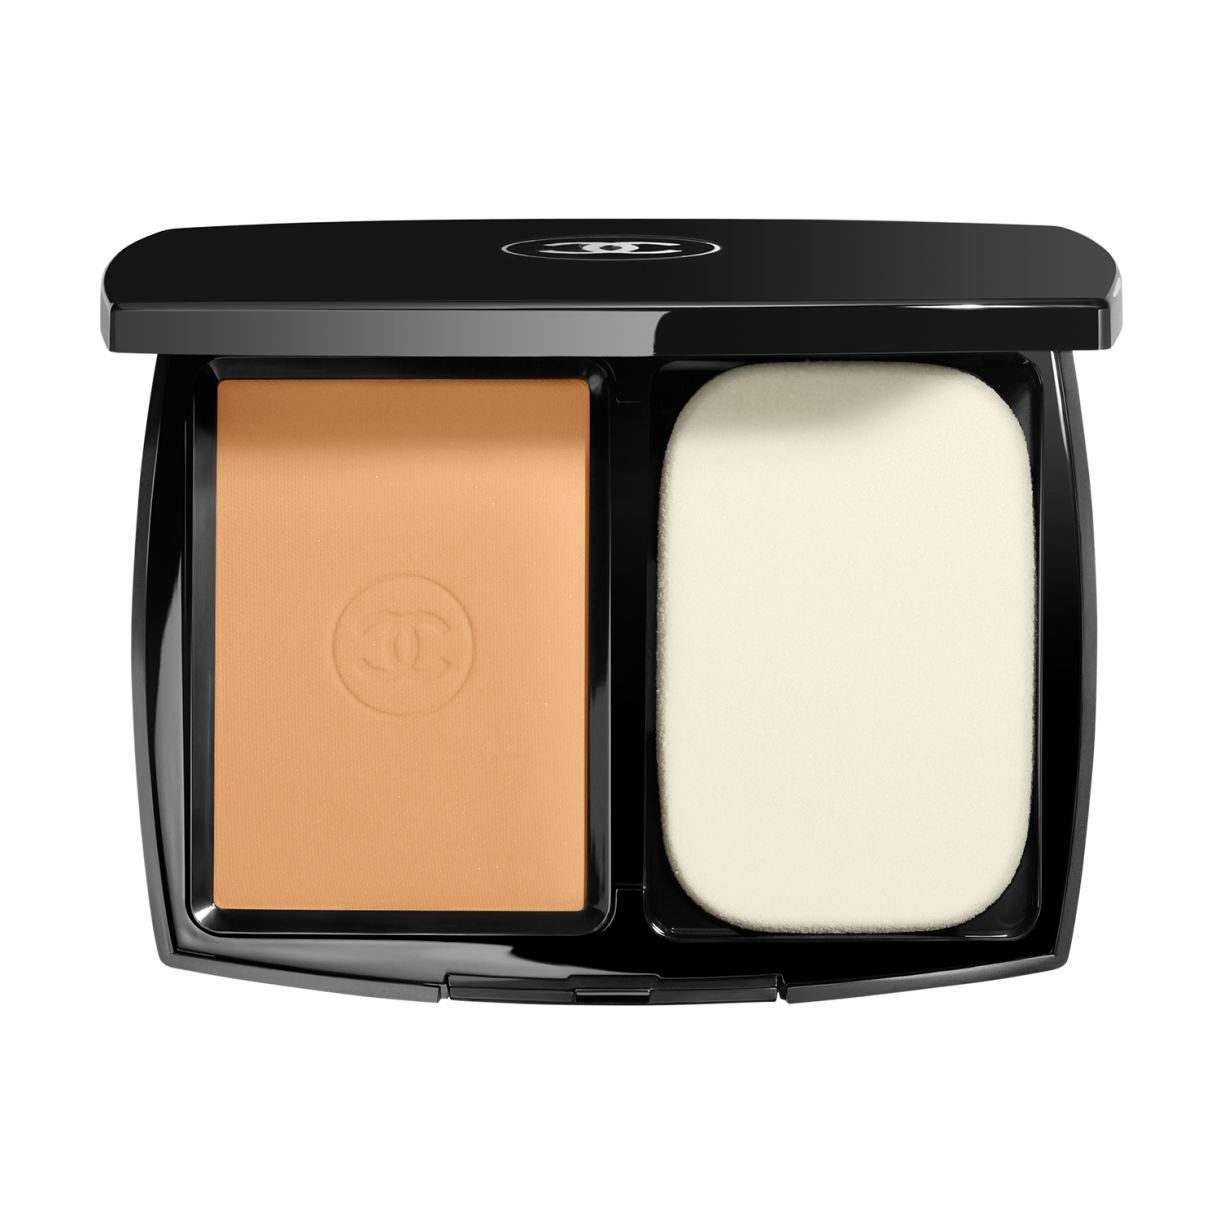 LE TEINT ULTRA TENUE ULTRAWEAR FLAWLESS COMPACT FOUNDATION SPF 15 91 CARAMEL 13G